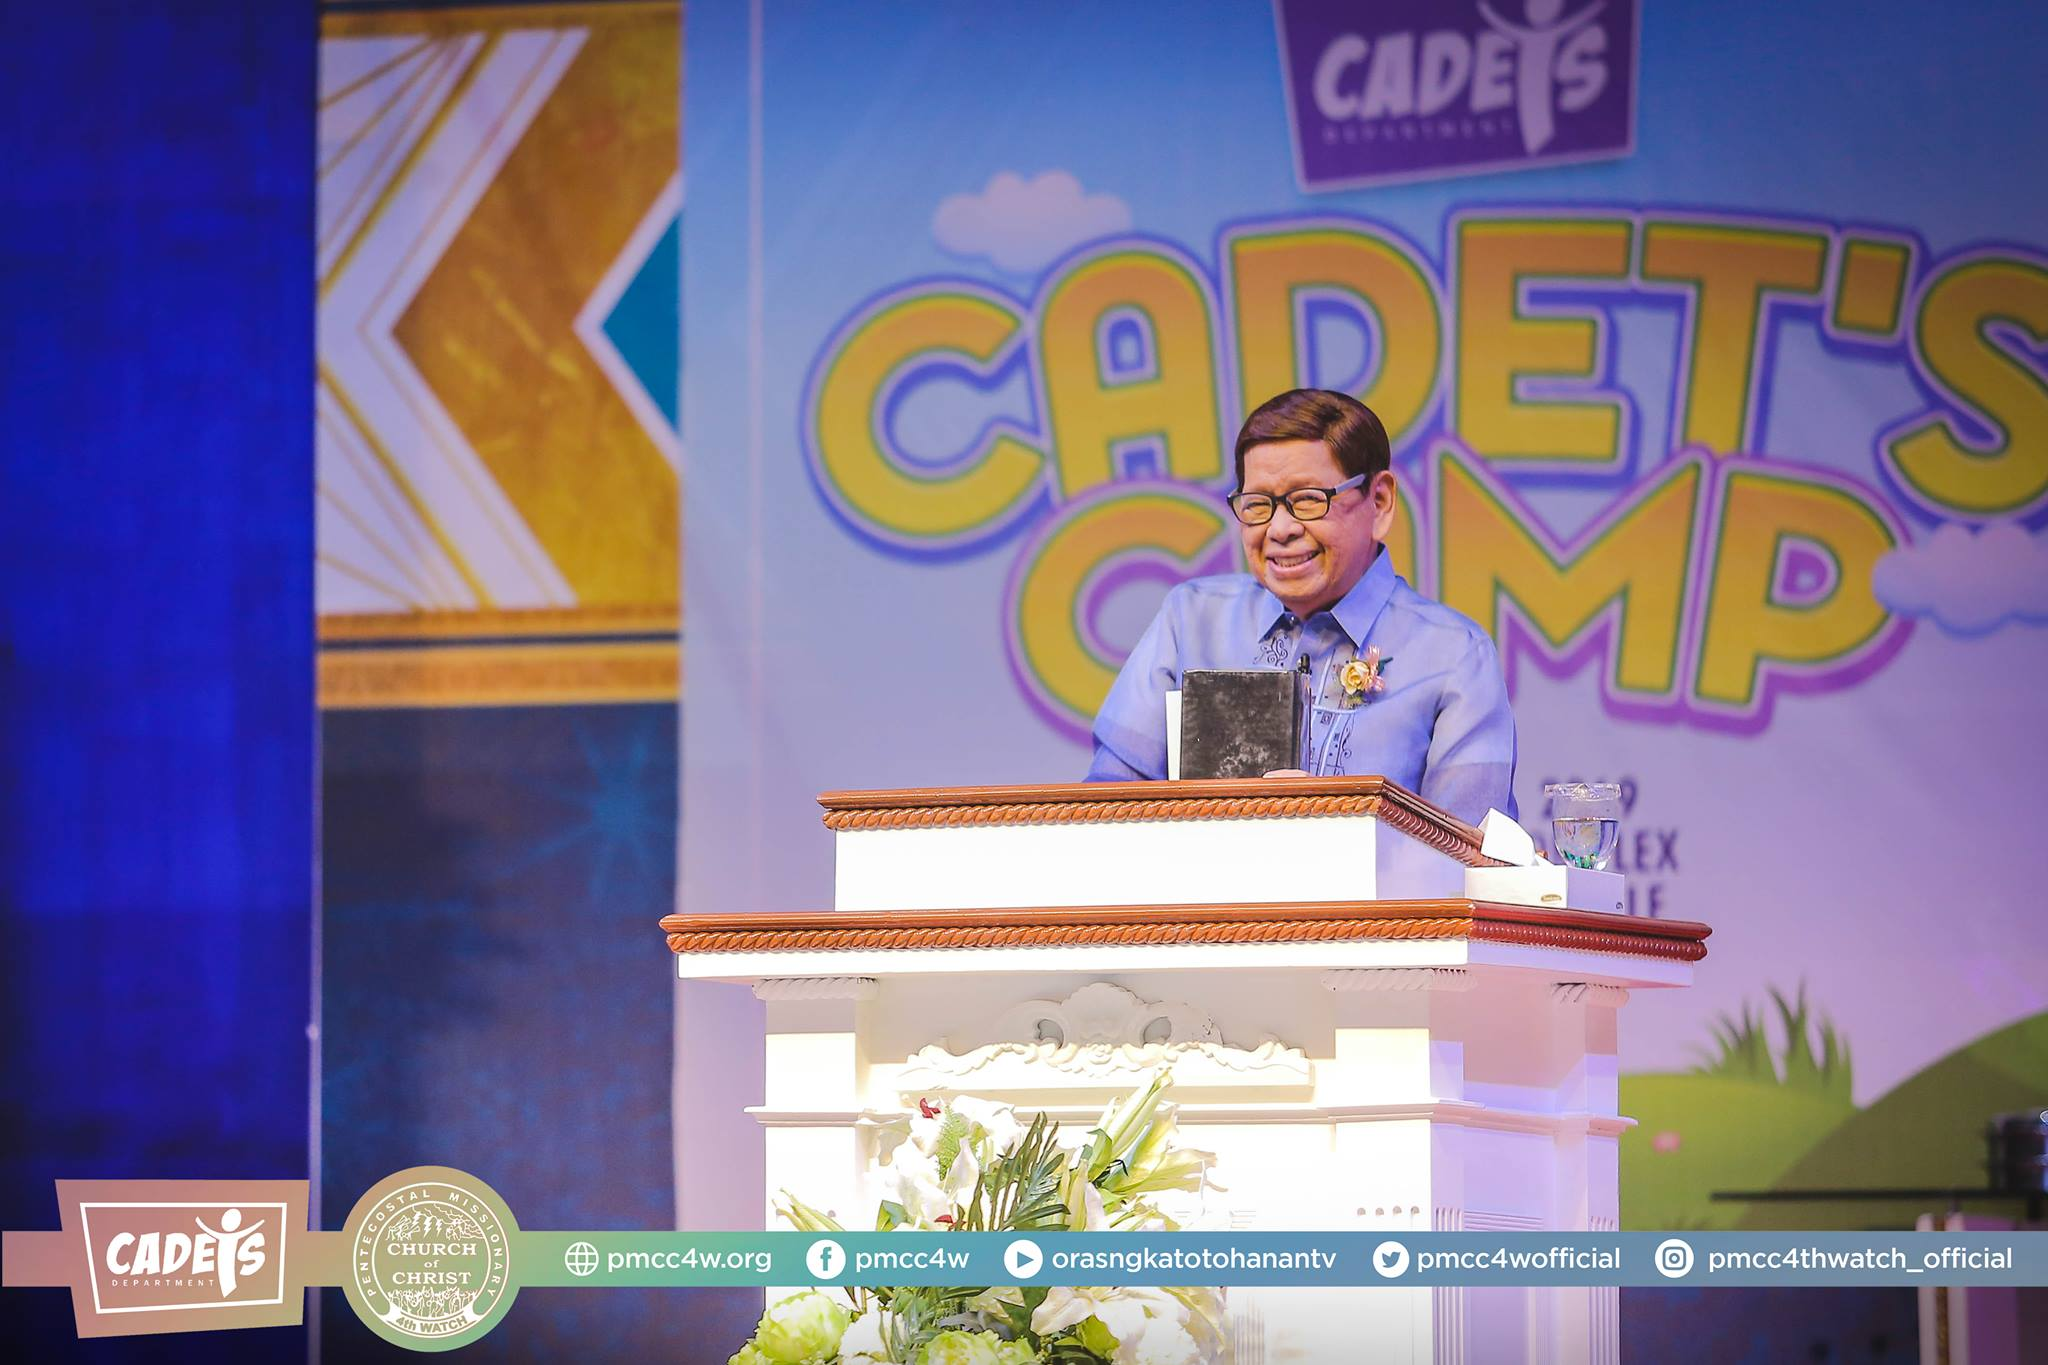 Pentecostal Missionary Church of Christ 4W; PMCC 4W; Cadets Camp; Church; Faith; Children; Apostle Arsenio T. Ferriol;